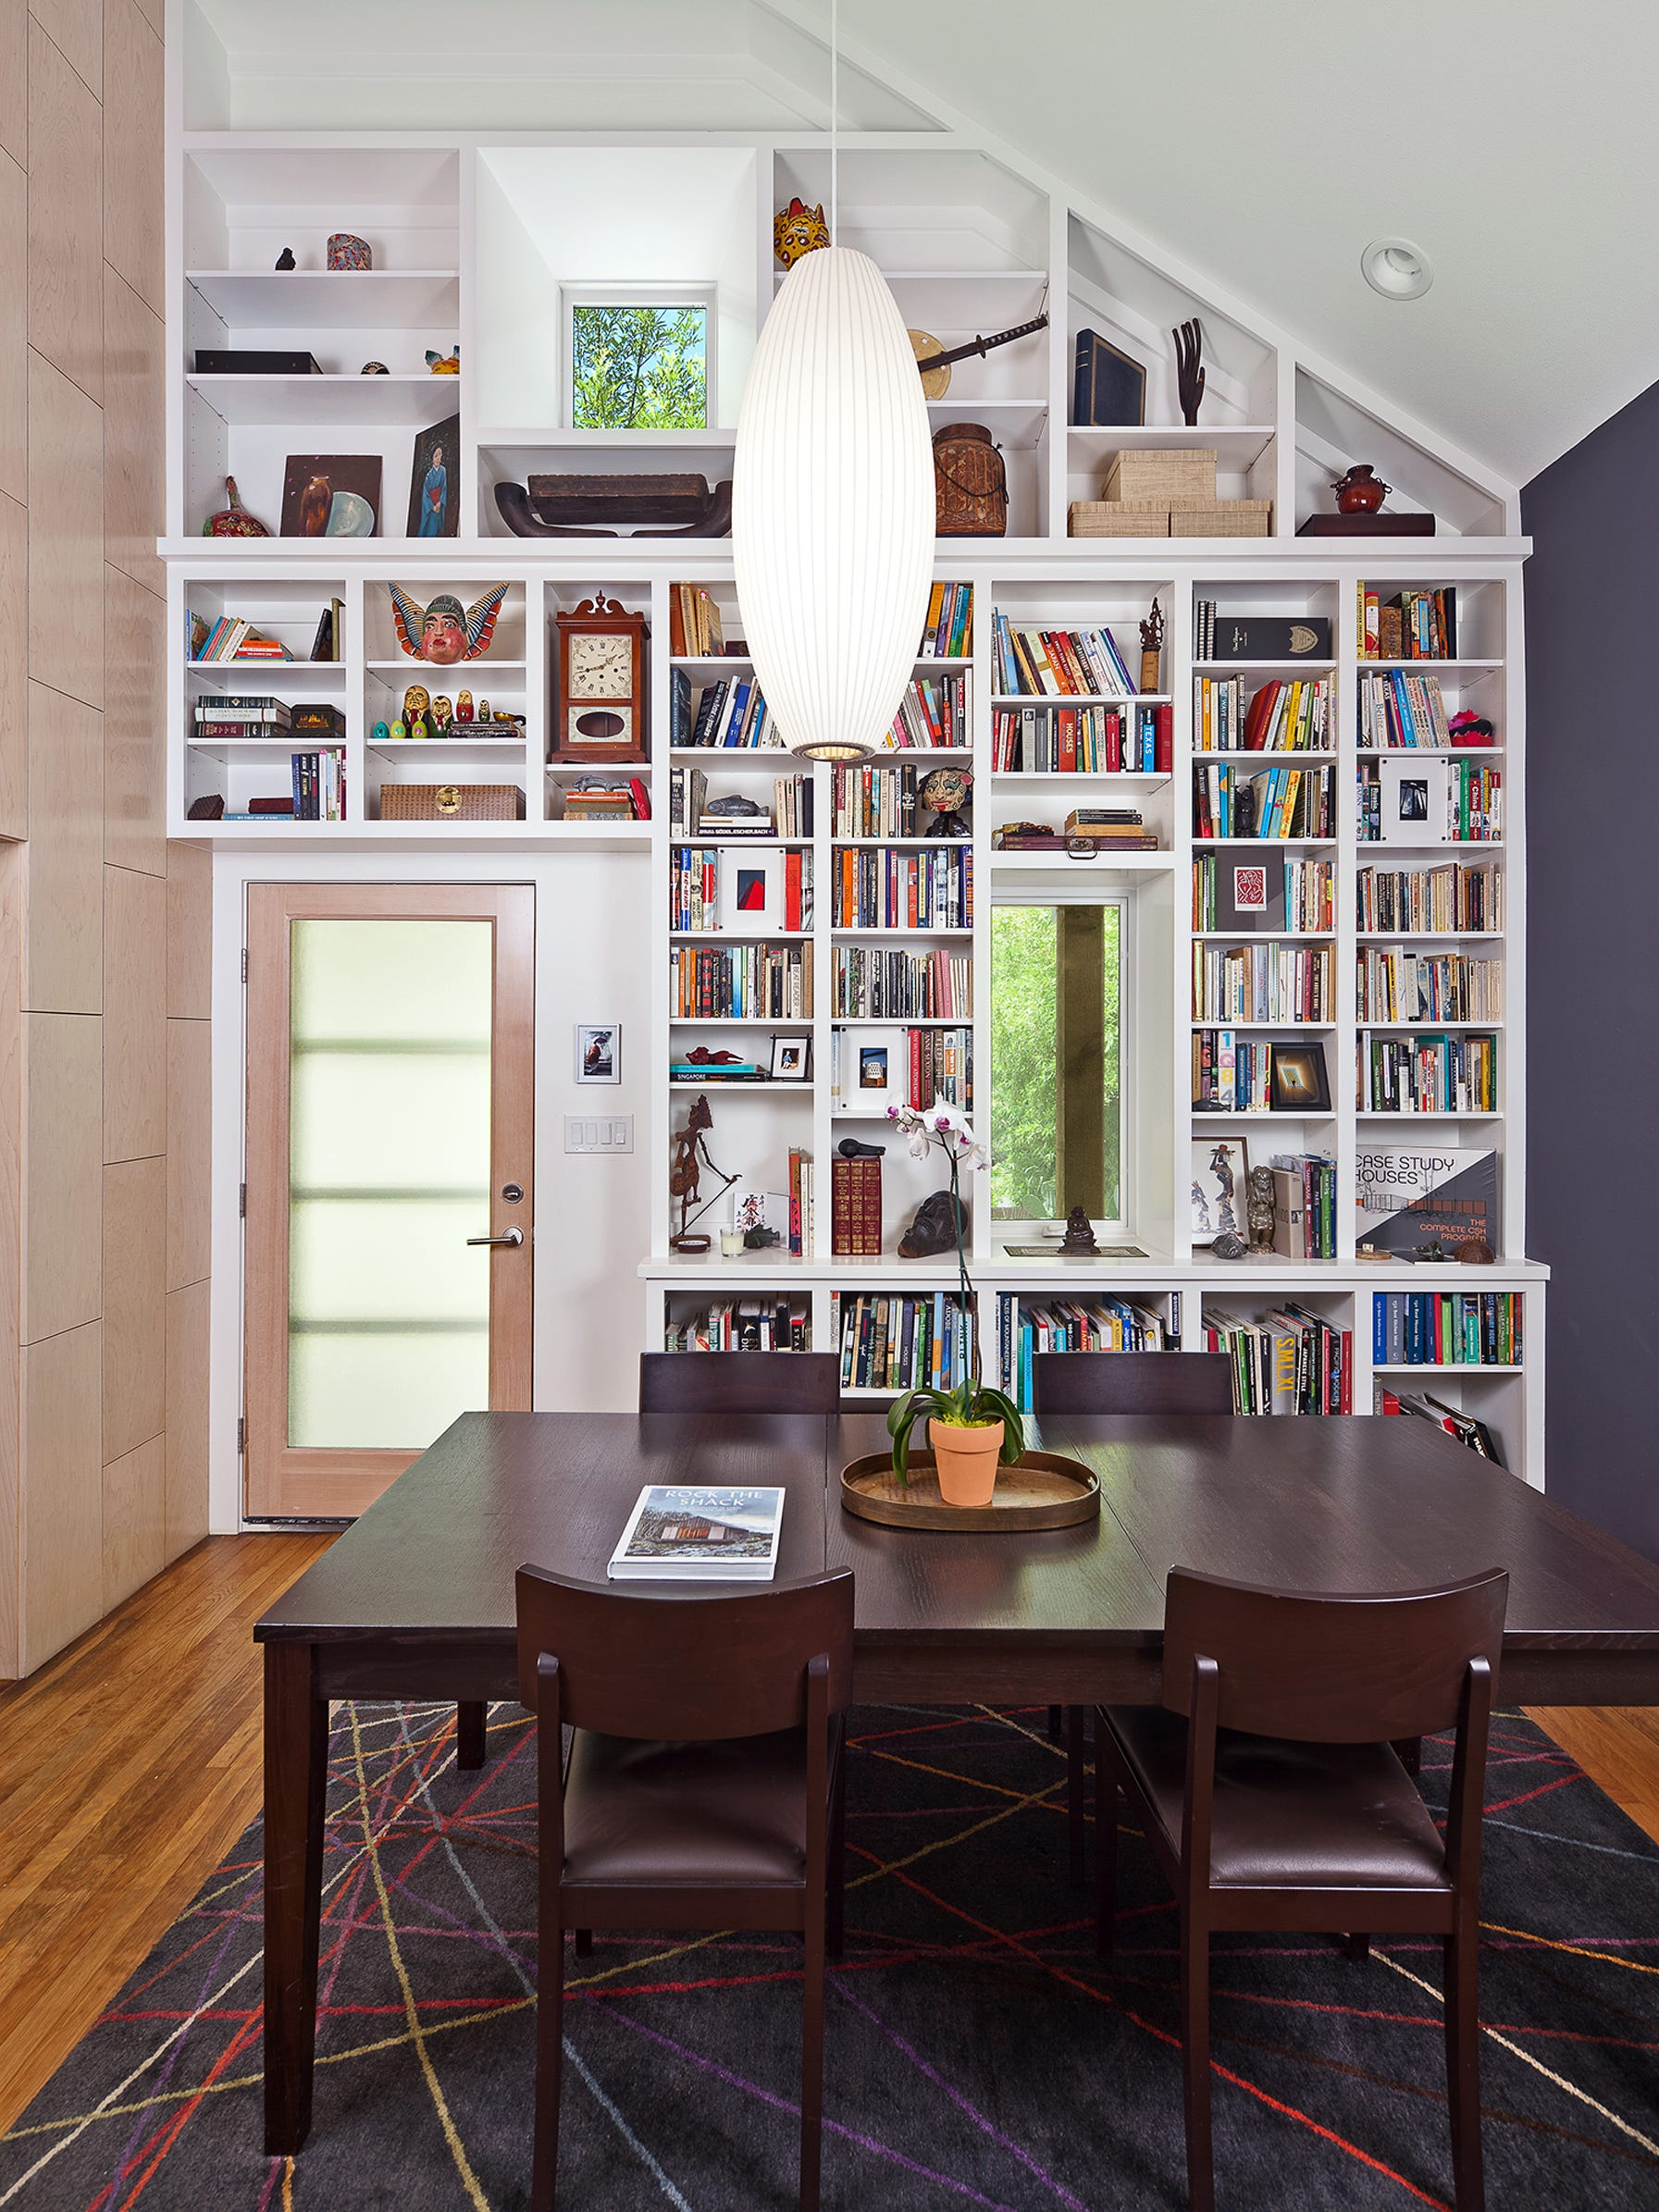 Dining Rooms Repurposed For How Homeowners Live Today